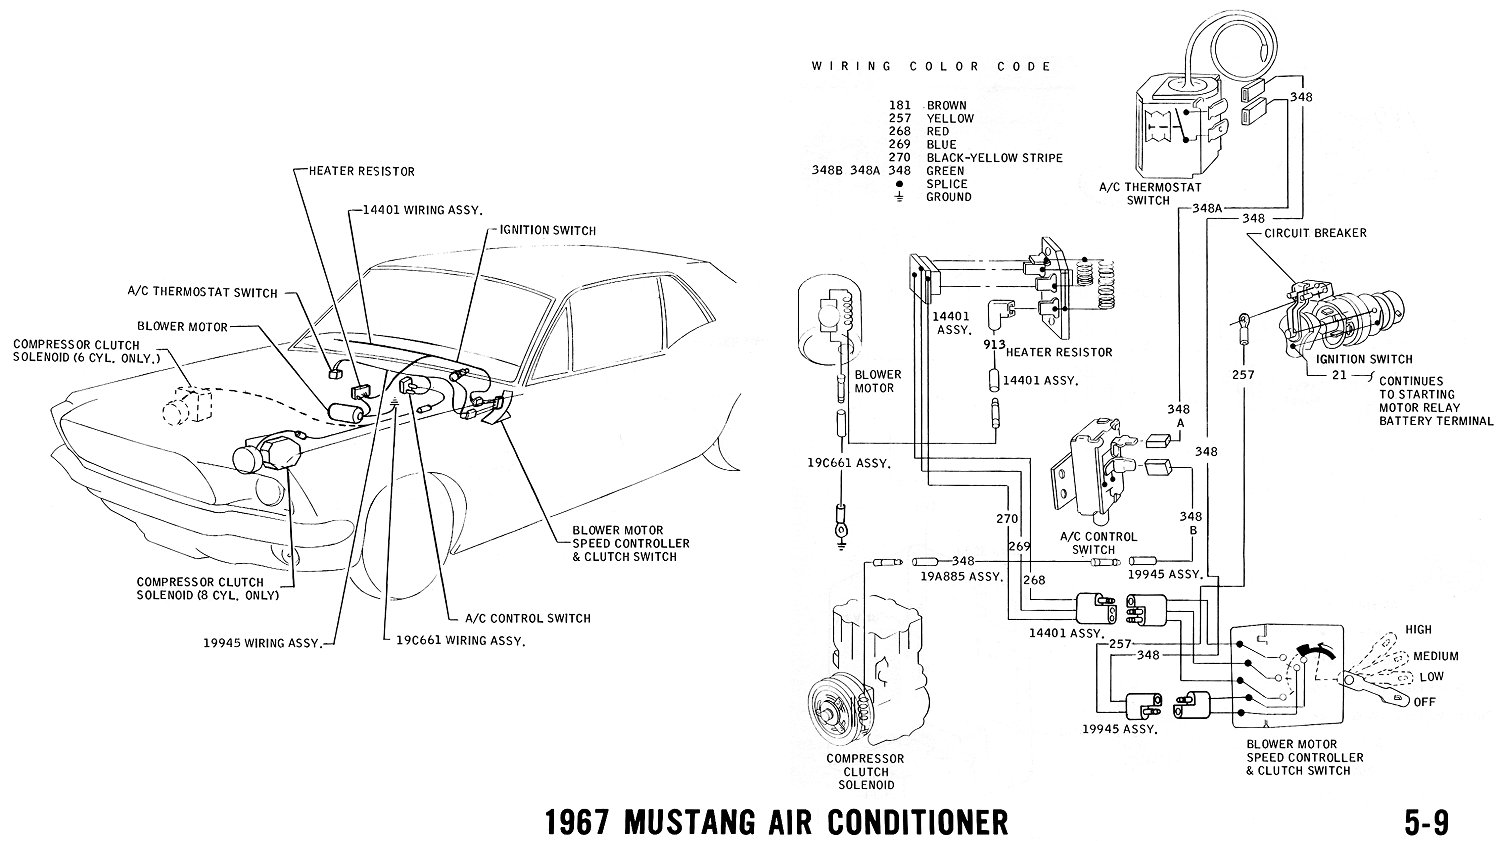 67ac 67 ac compressor runs constantly vintage mustang forums 1967 Mustang Wiring Schematic at crackthecode.co